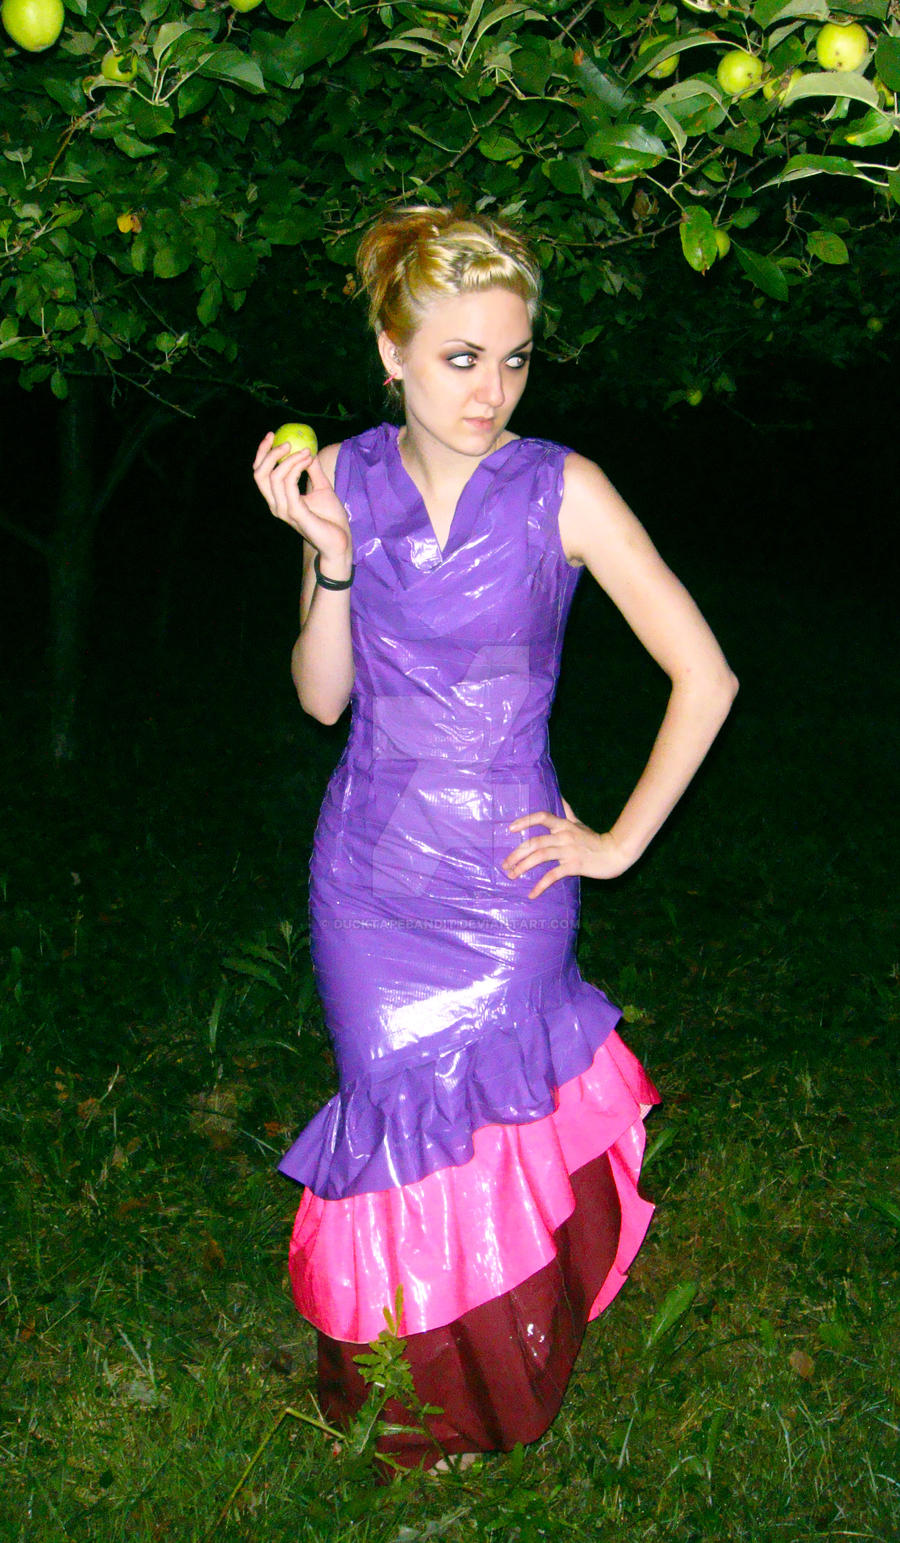 Images of duct tape dresses for sale | Fashion luxy dress